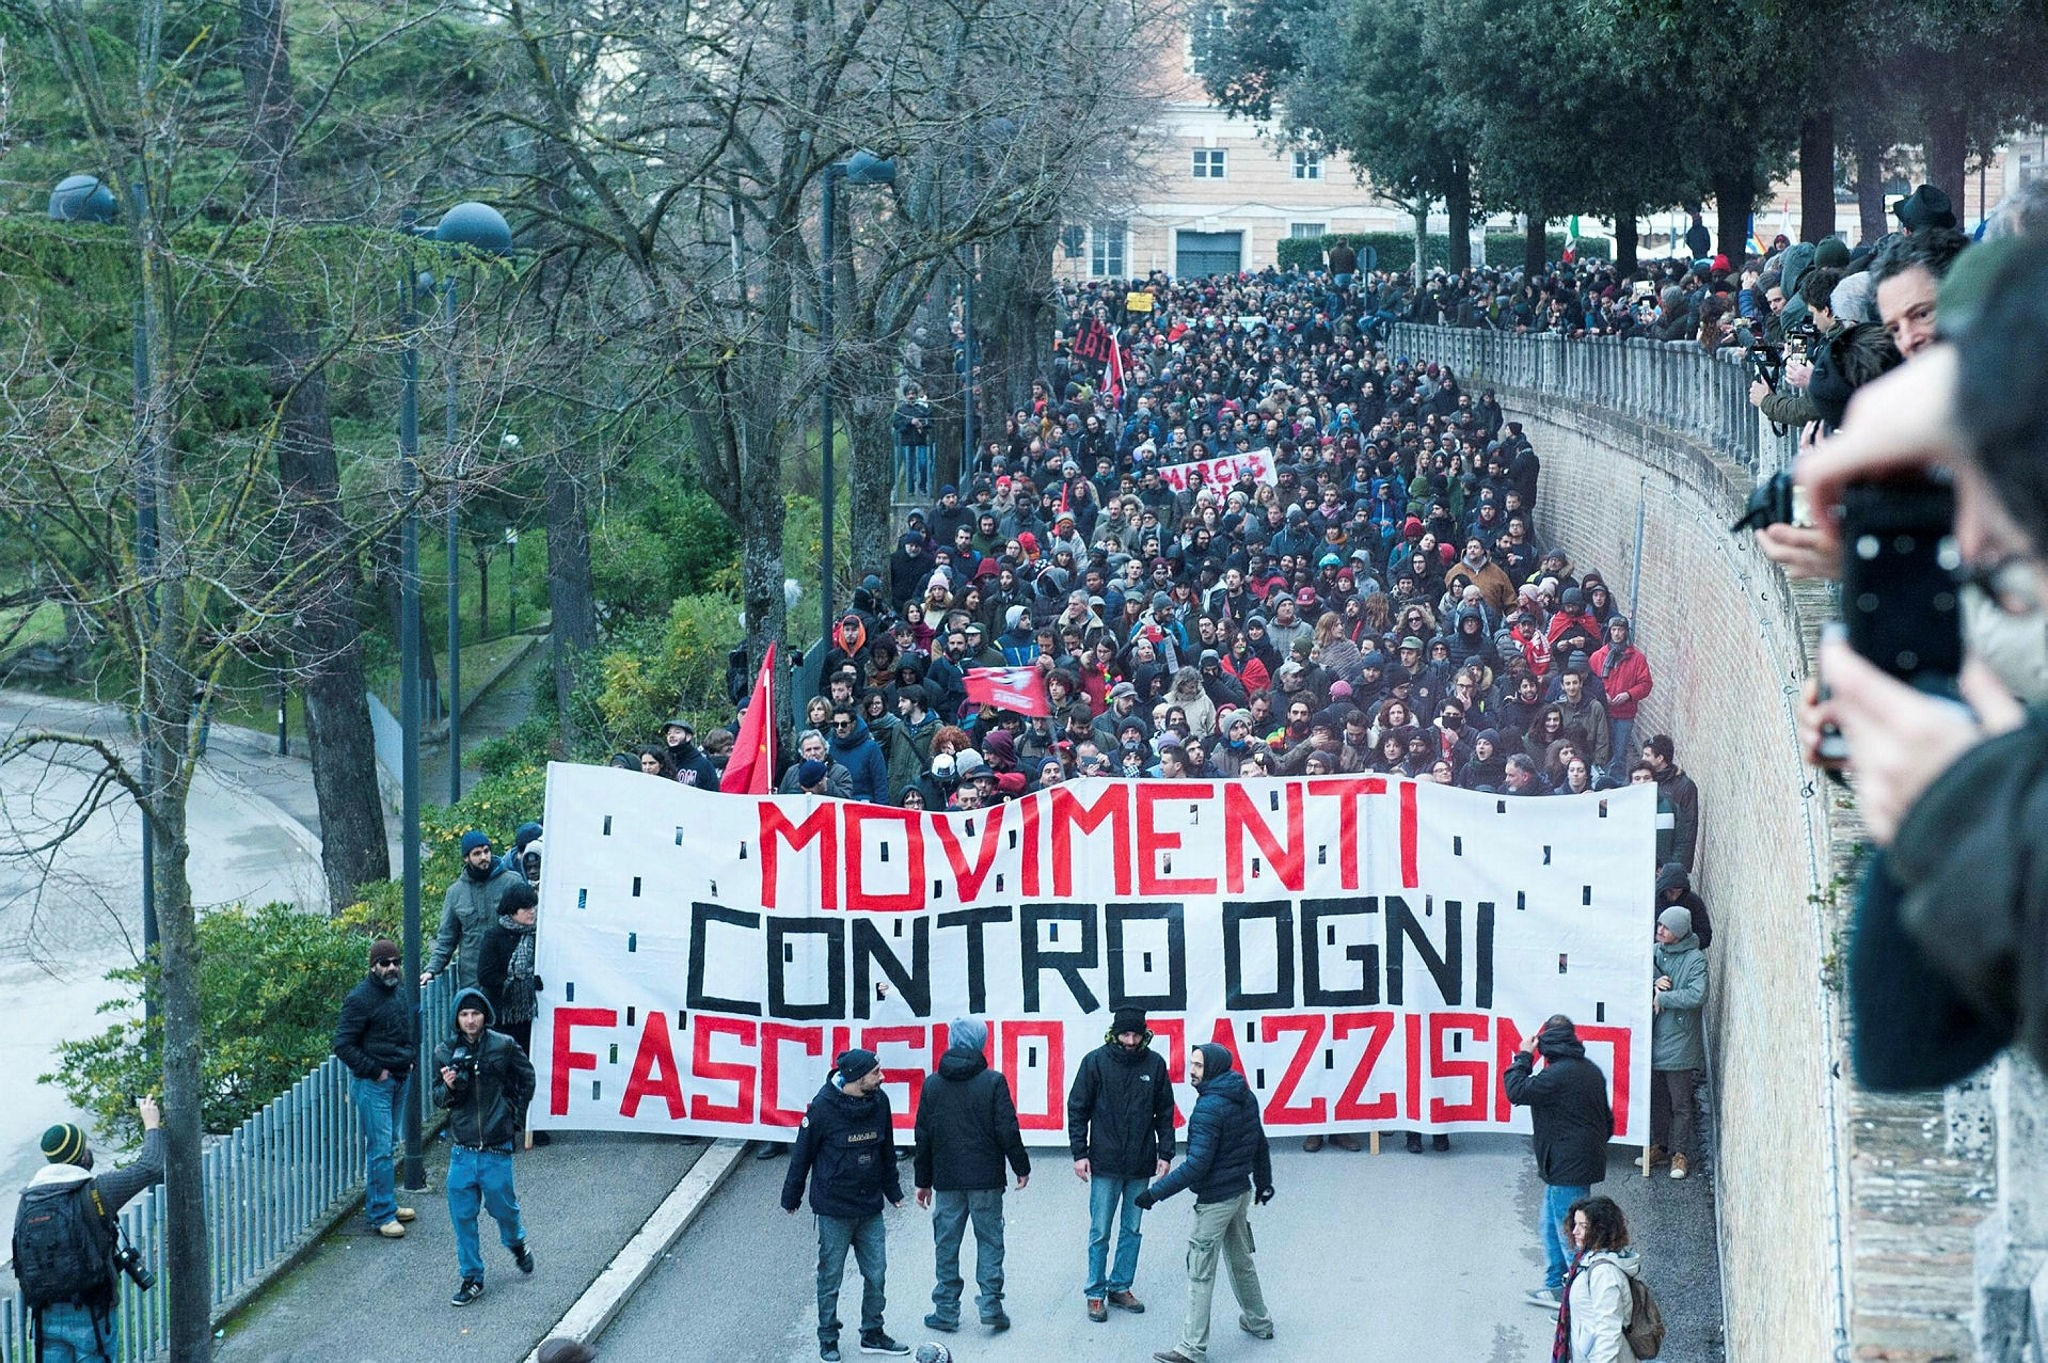 Demonstrators march during an anti-racism rally in Macerata, Italy, Feb. 10.